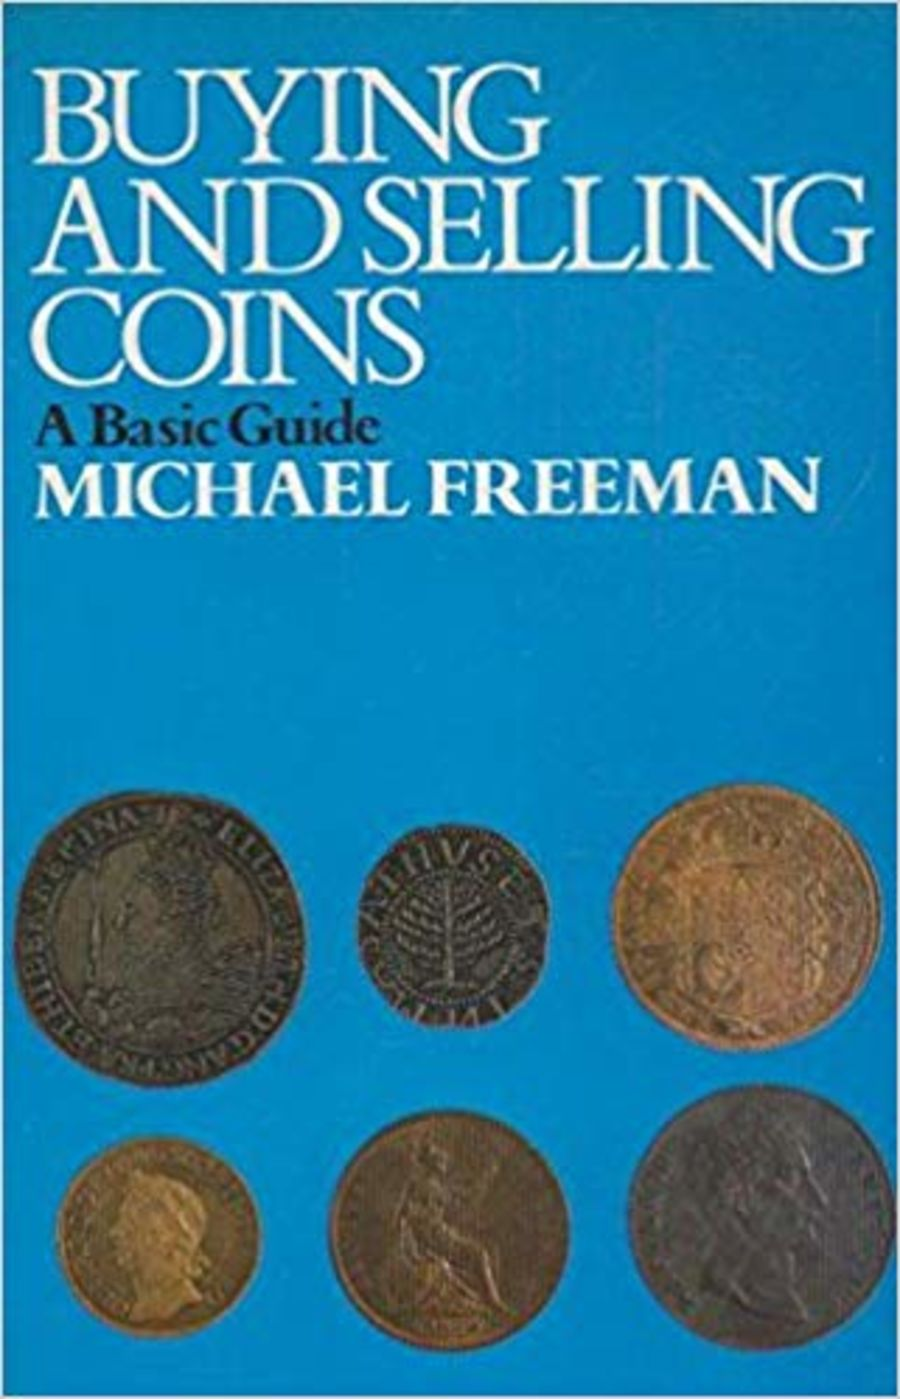 Buying and selling coins a basic guide by Michael Freeman